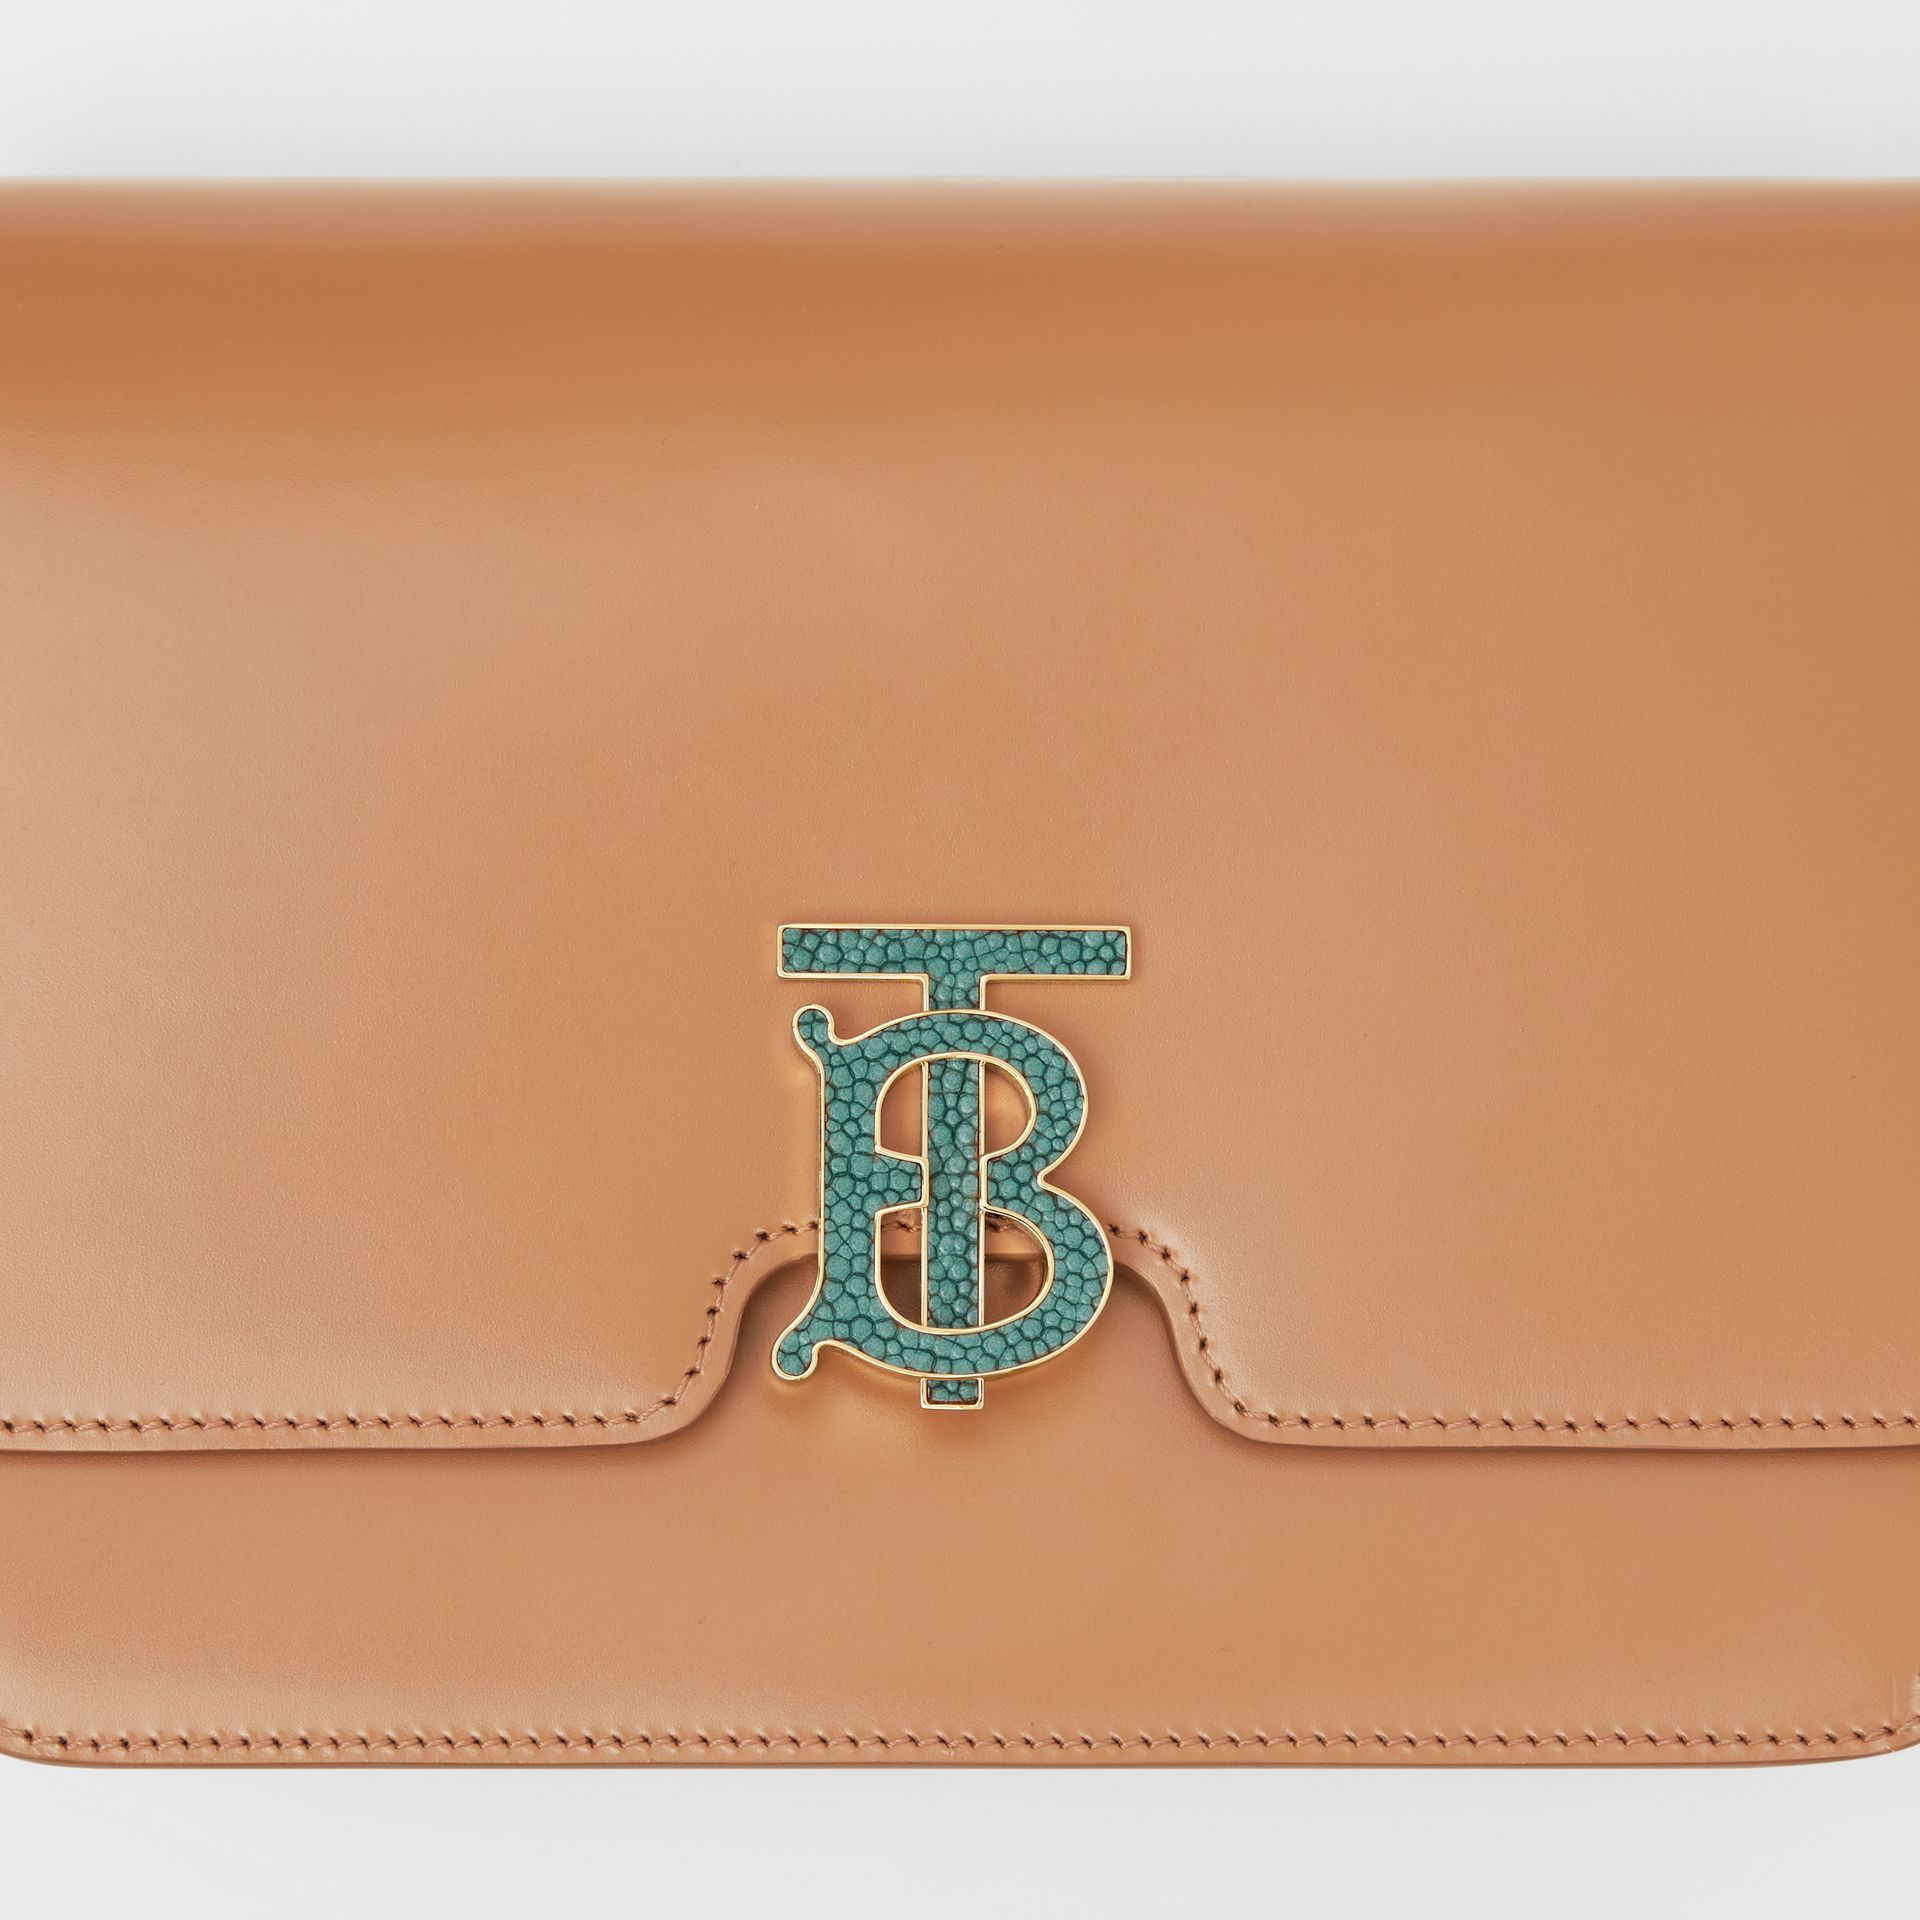 Medium Leather TB Bag in Flaxseed - Women | Burberry United States - gallery image 1